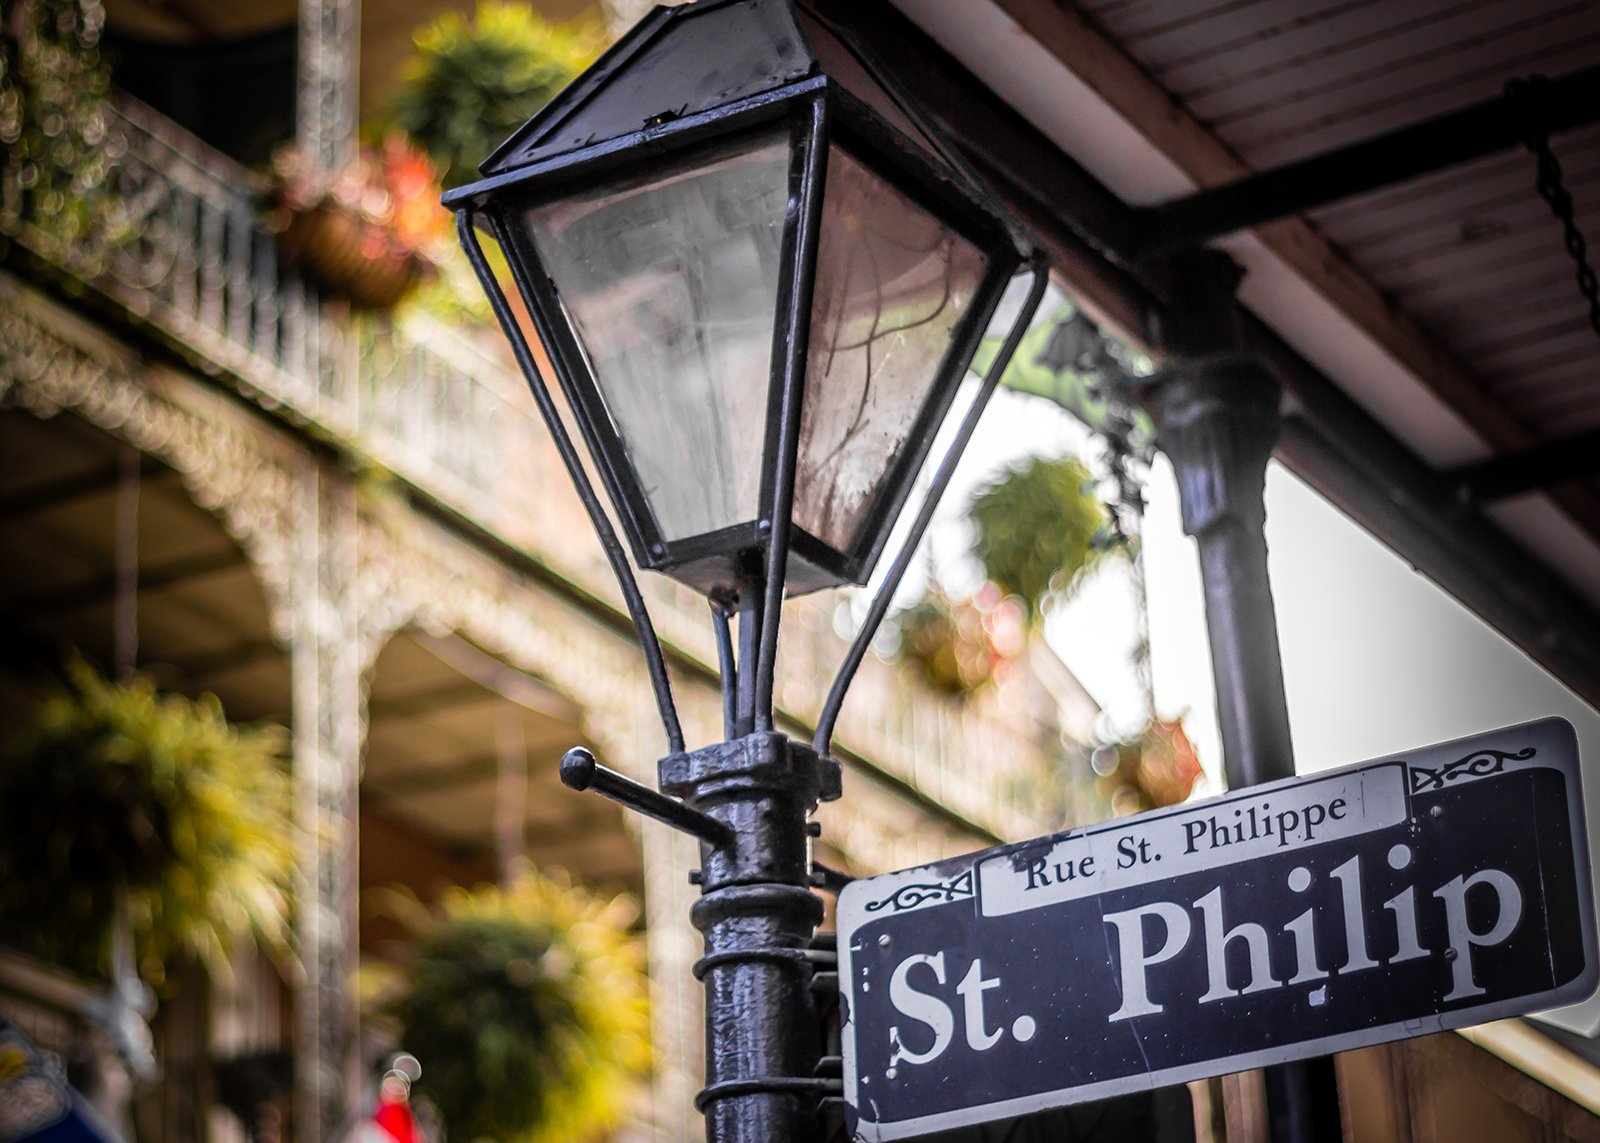 St. Philip Street sign on lamp post in New Orleans French Quarter